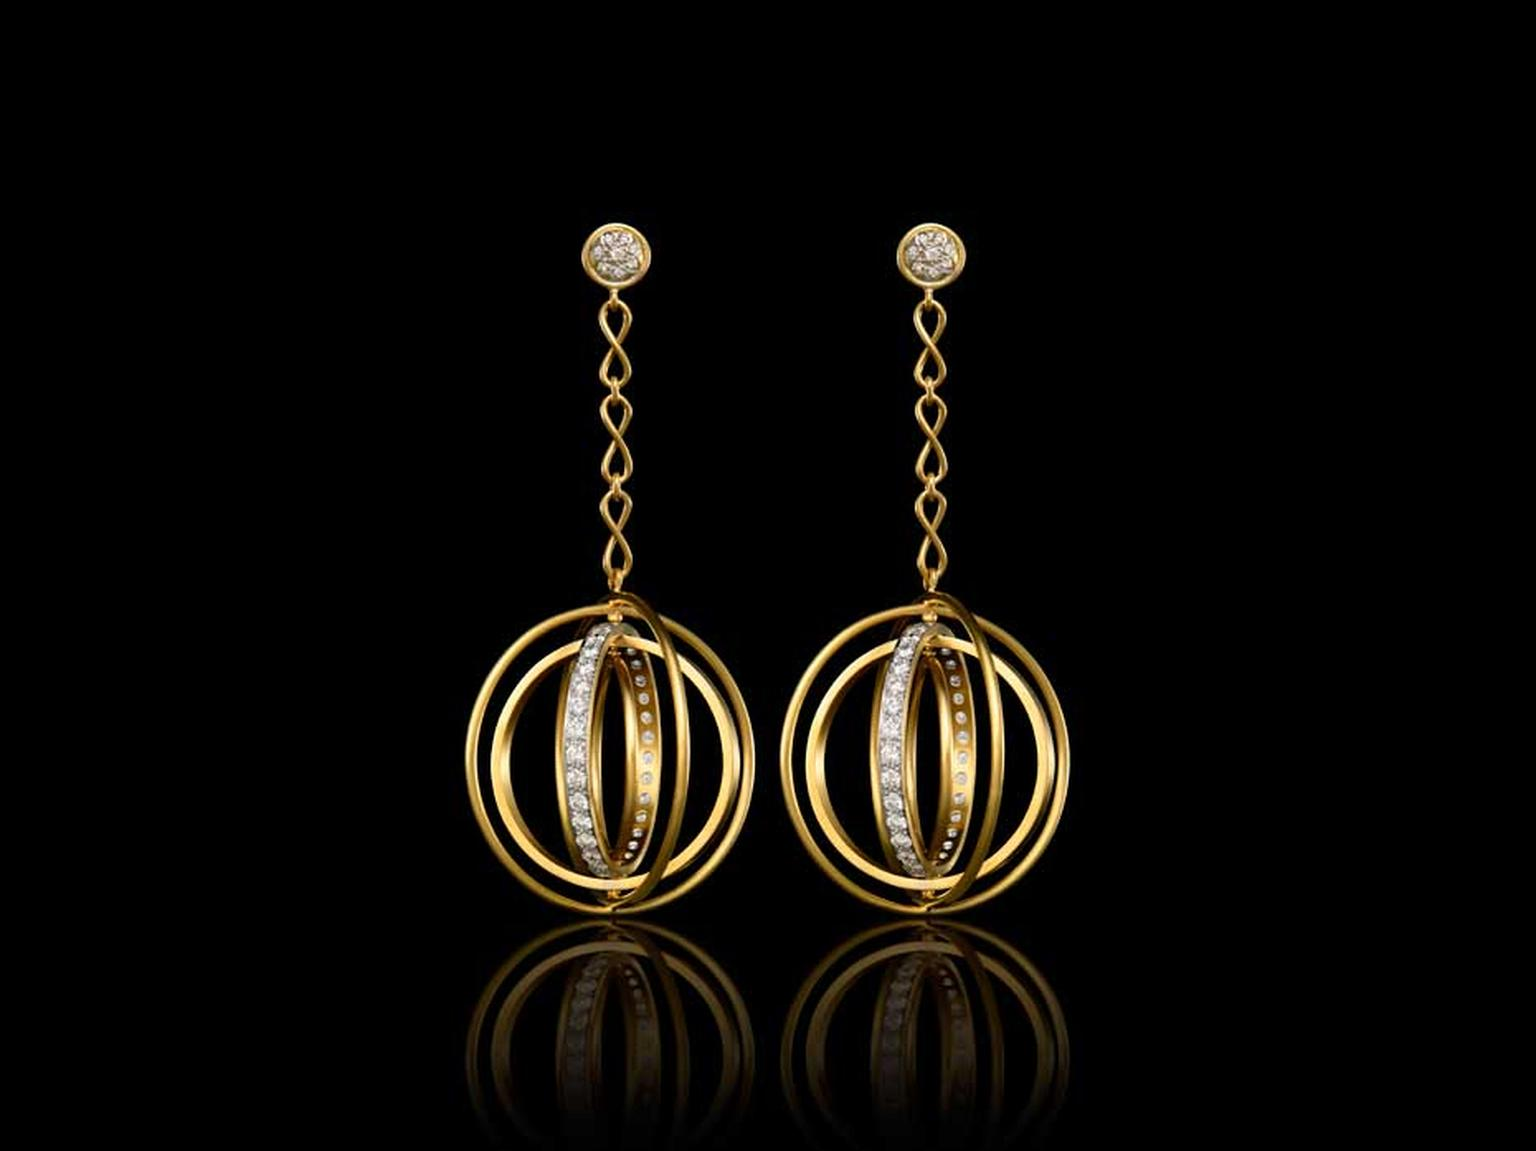 Liv Ballard Collection Orrechini Cerchi Piroetta Spinning Hoop earrings in yellow gold with diamonds.